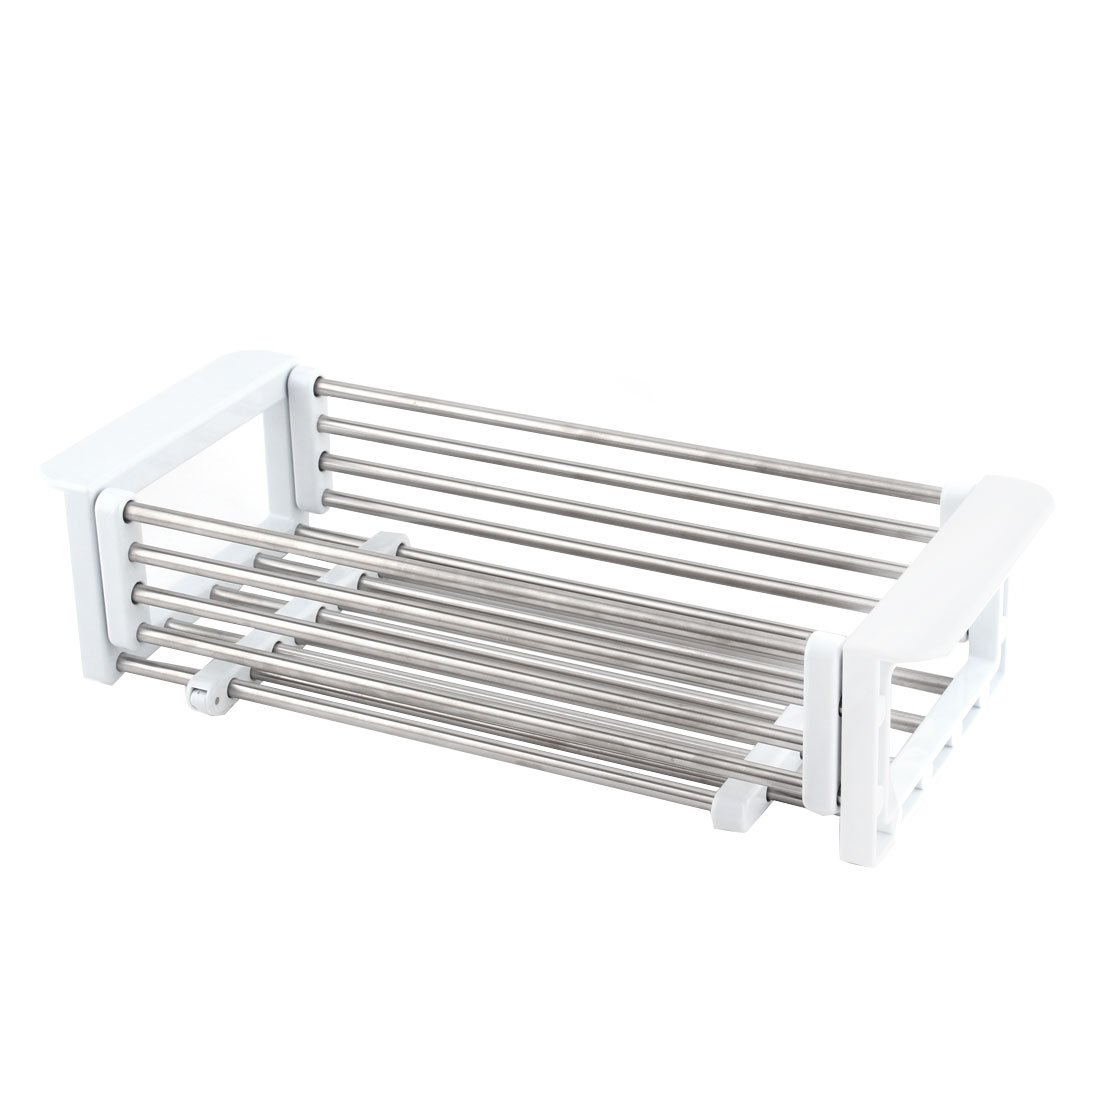 uxcell Metal Kitchen Telescopic Dish Drain Rack Sink Tray Colander Drying Holder White Silver Tone